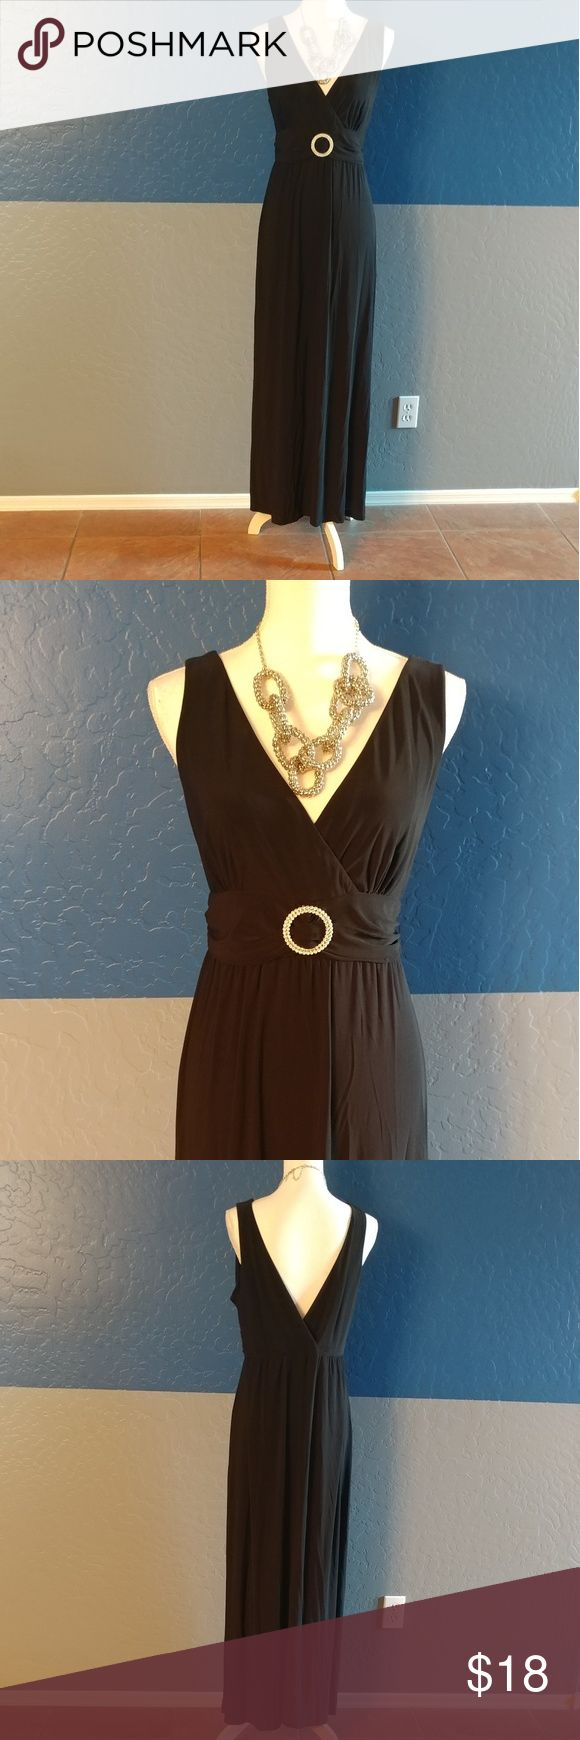 "🆕Olivia Matthews Maxi Dress Beautiful Black w/Silver Buckle Dress  Sleeveless 36"" Bust 55"" Length  Polyester Spandex  Bundle and Save Olivia Matthews Dresses Maxi"